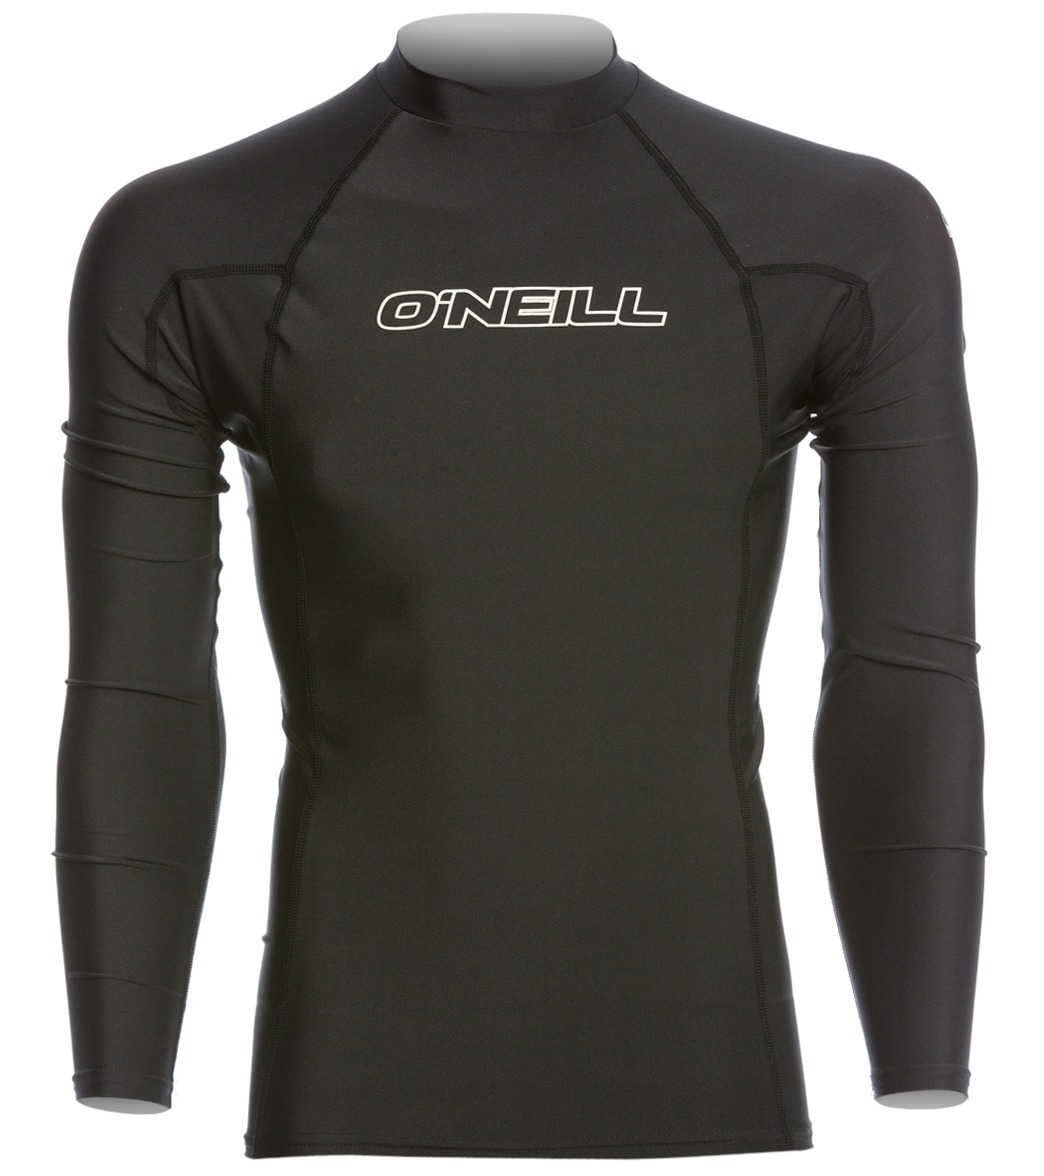 f363c2e5a93 O Neill Men s Basic Skins Long Sleeve Crew Rashguard at SwimOutlet.com